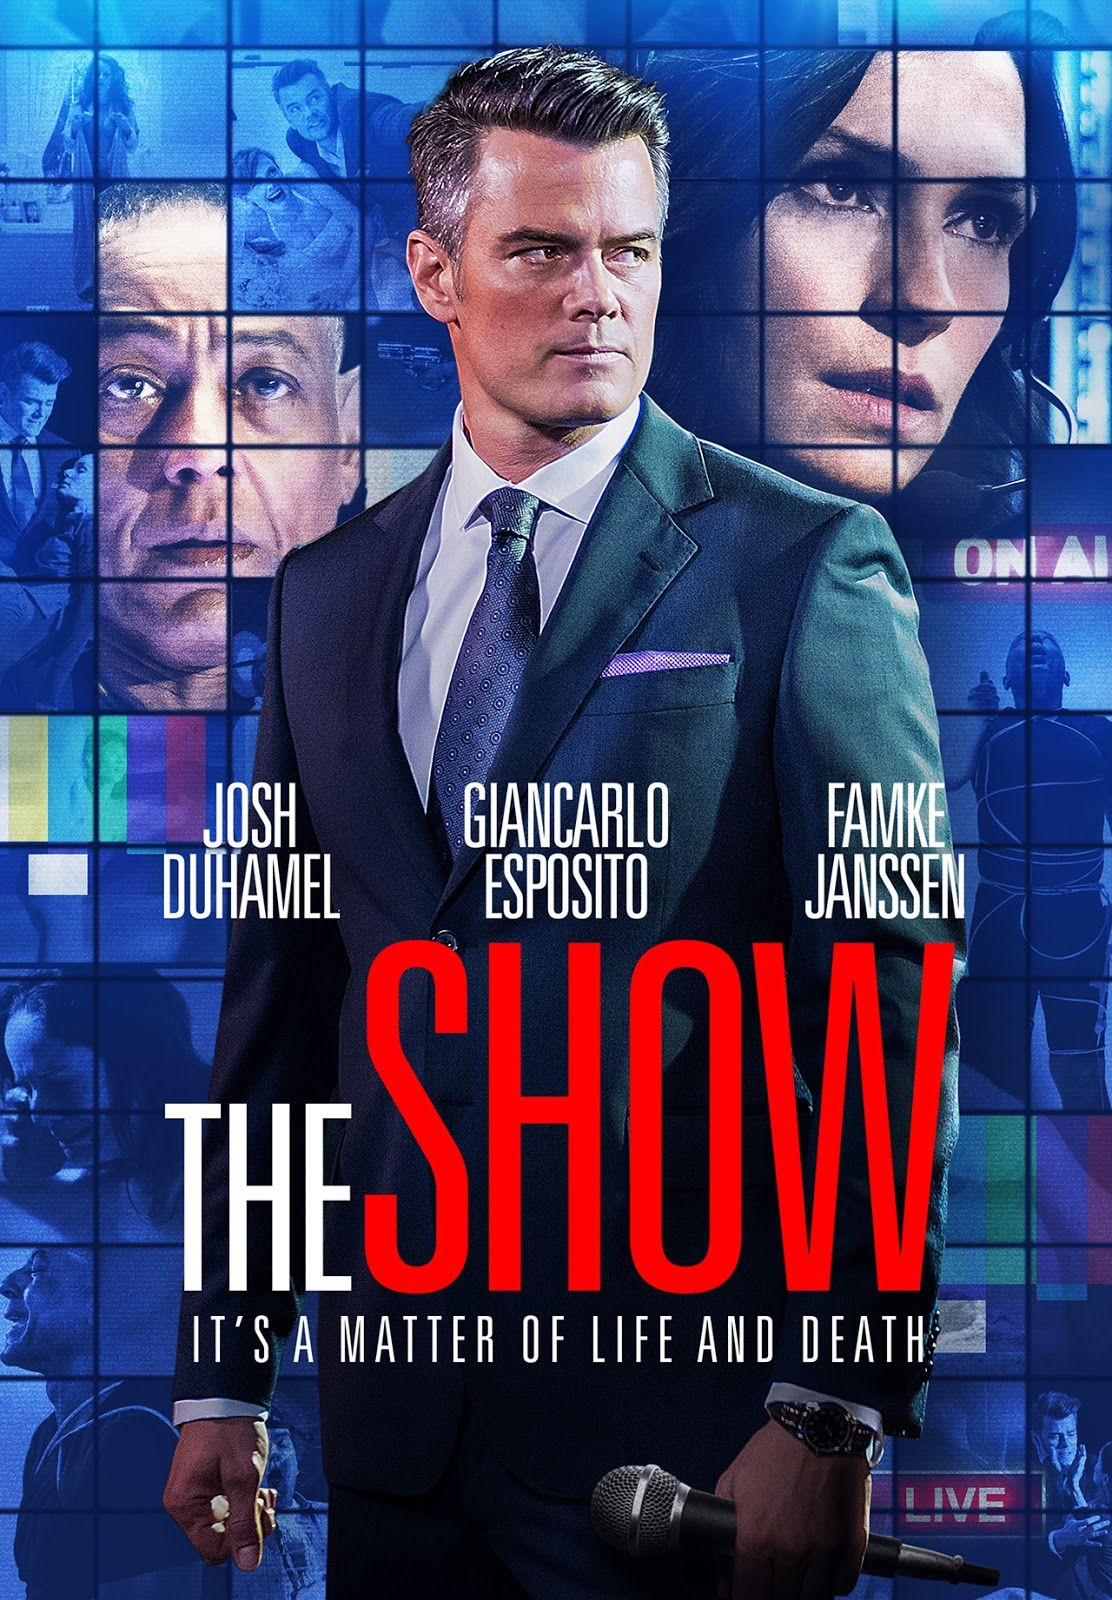 b15c7215b8 Josh Duhamel stars in the new movie The Show, directed by Giancarlo  Esposito. Read the spoiler free review @ The Movie Sleuth.